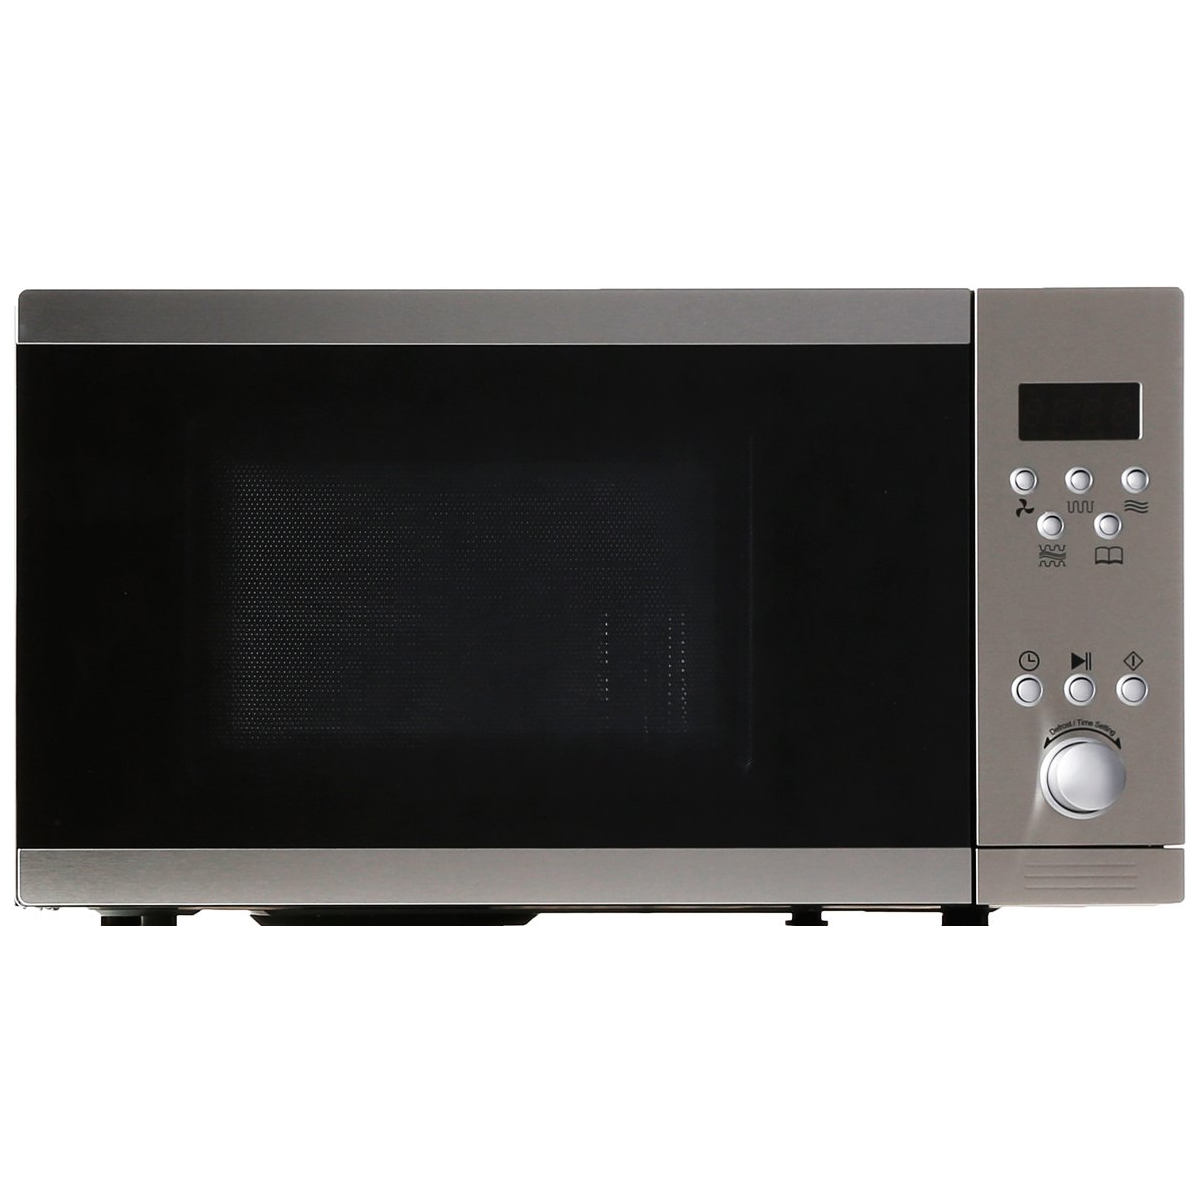 Euromaid MCG30 30L Convection Microwave 900W